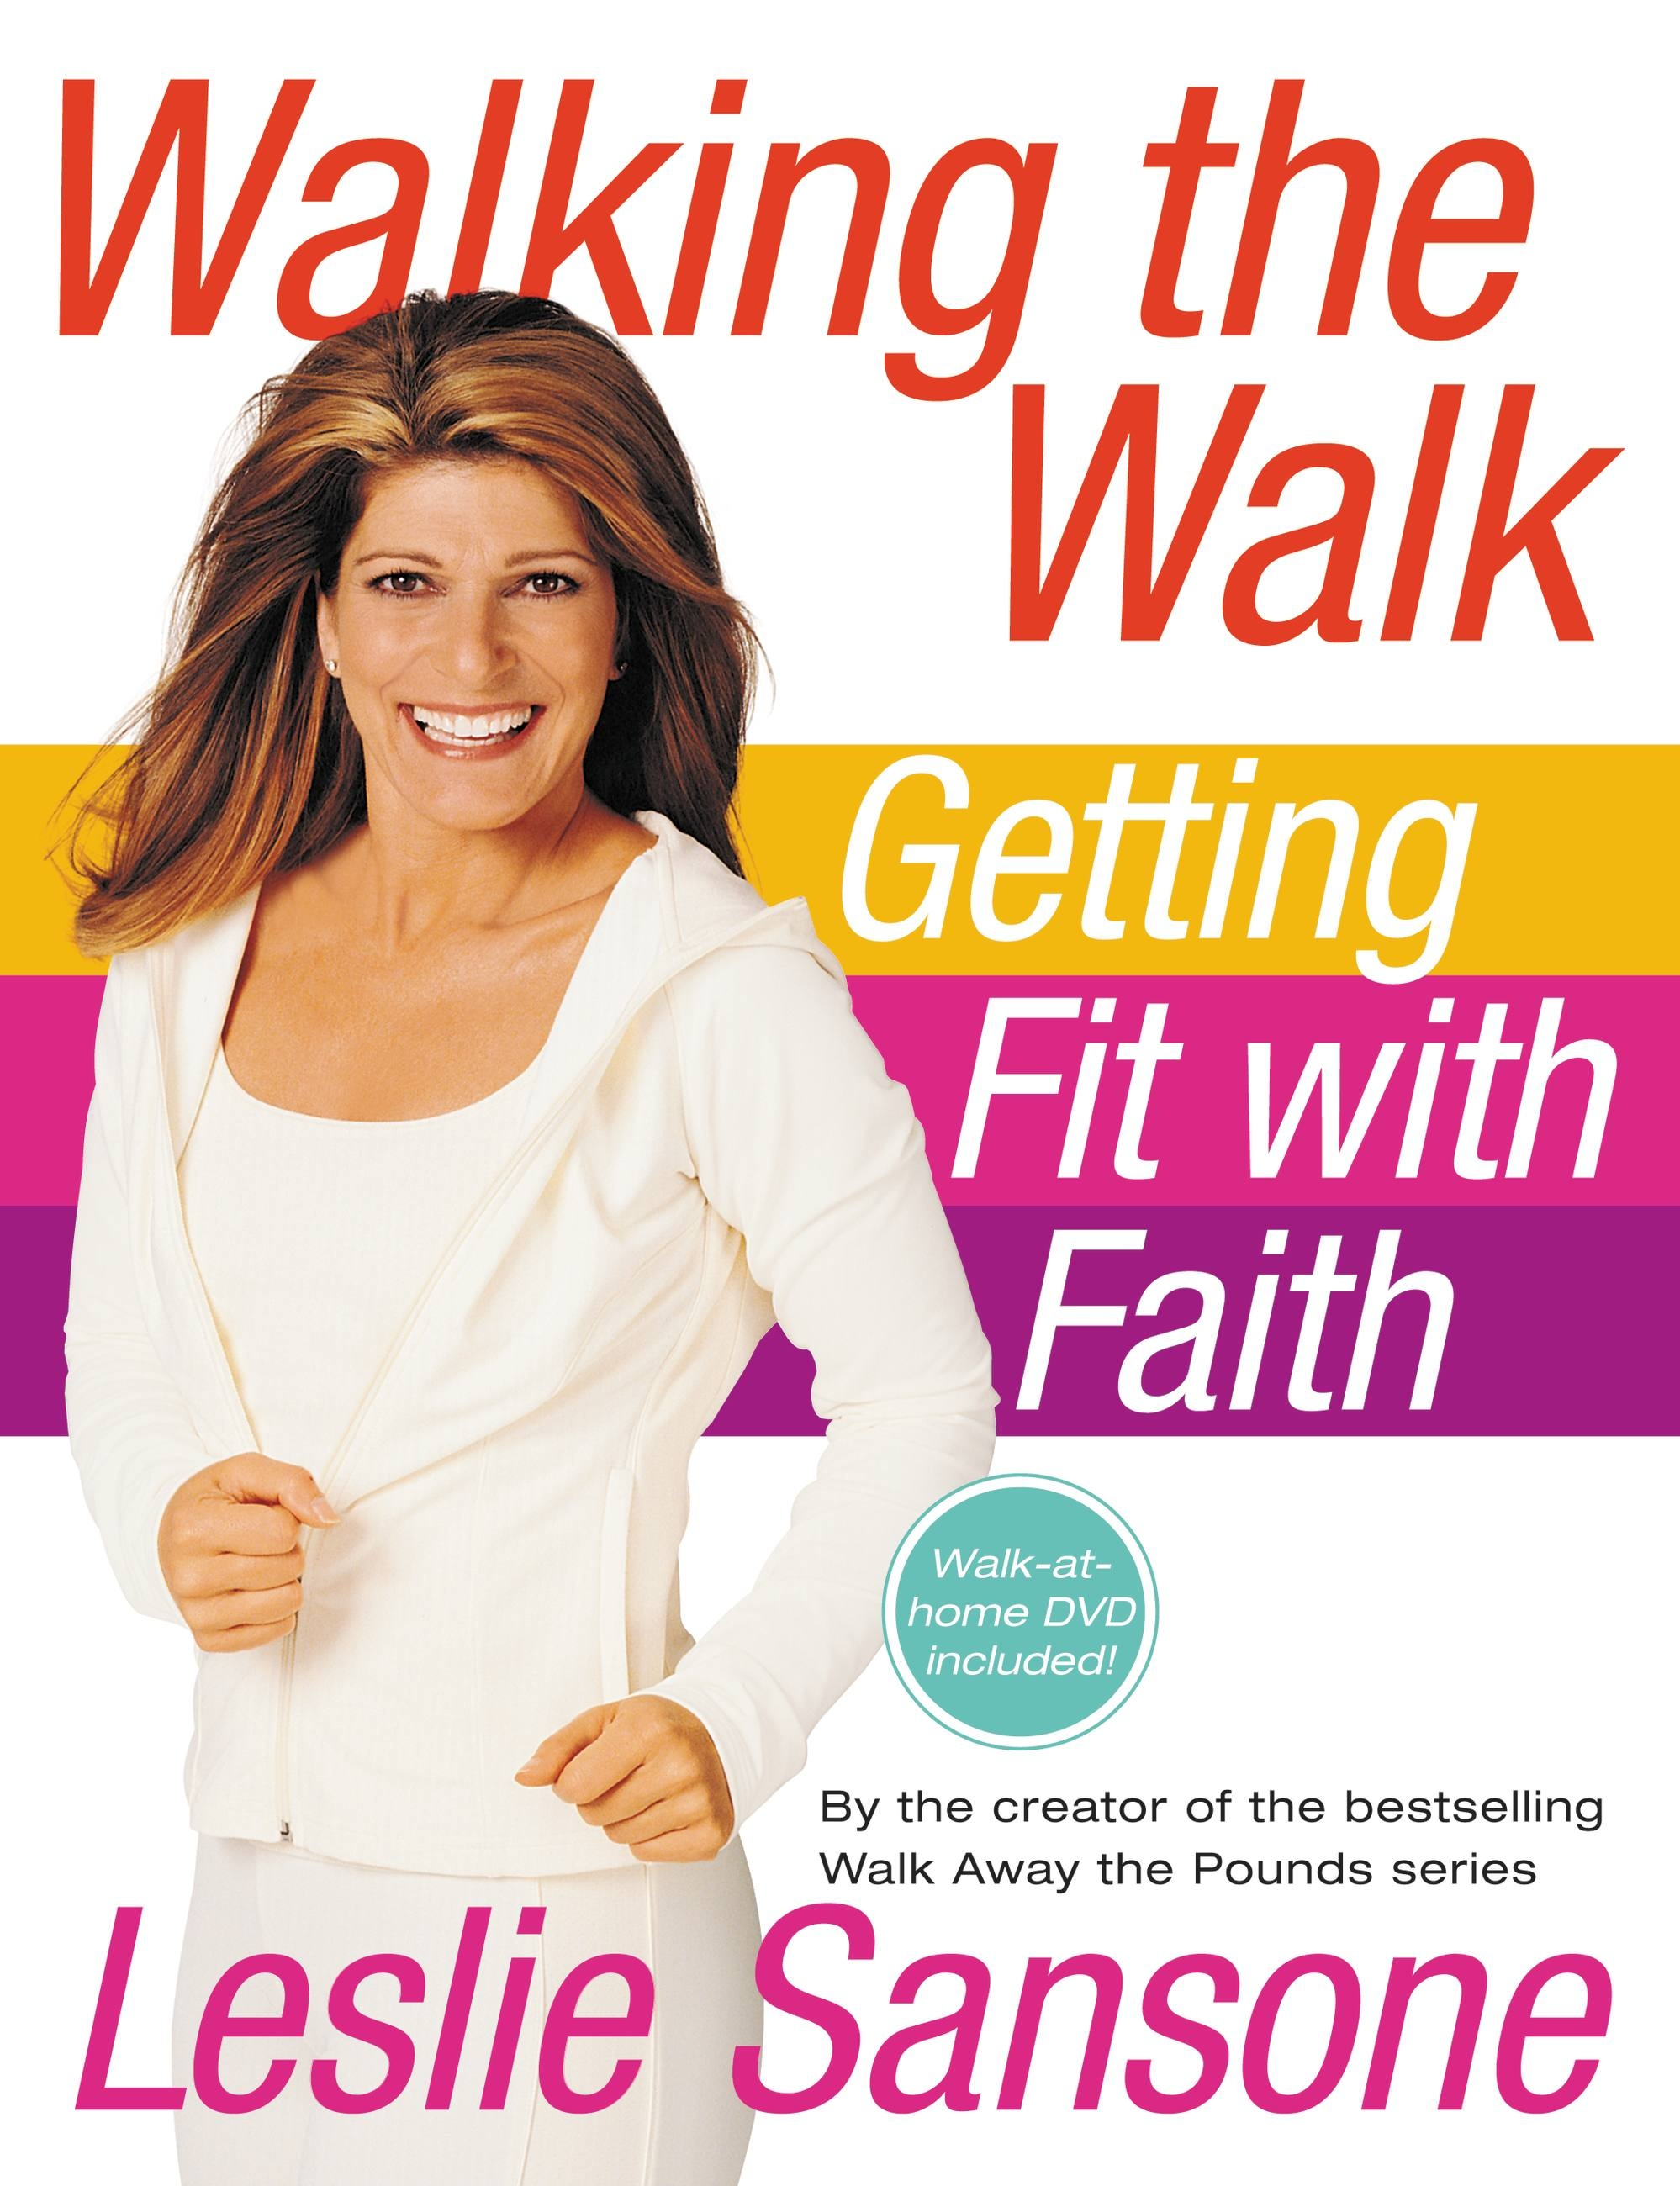 Walking the Walk (w/DVD)